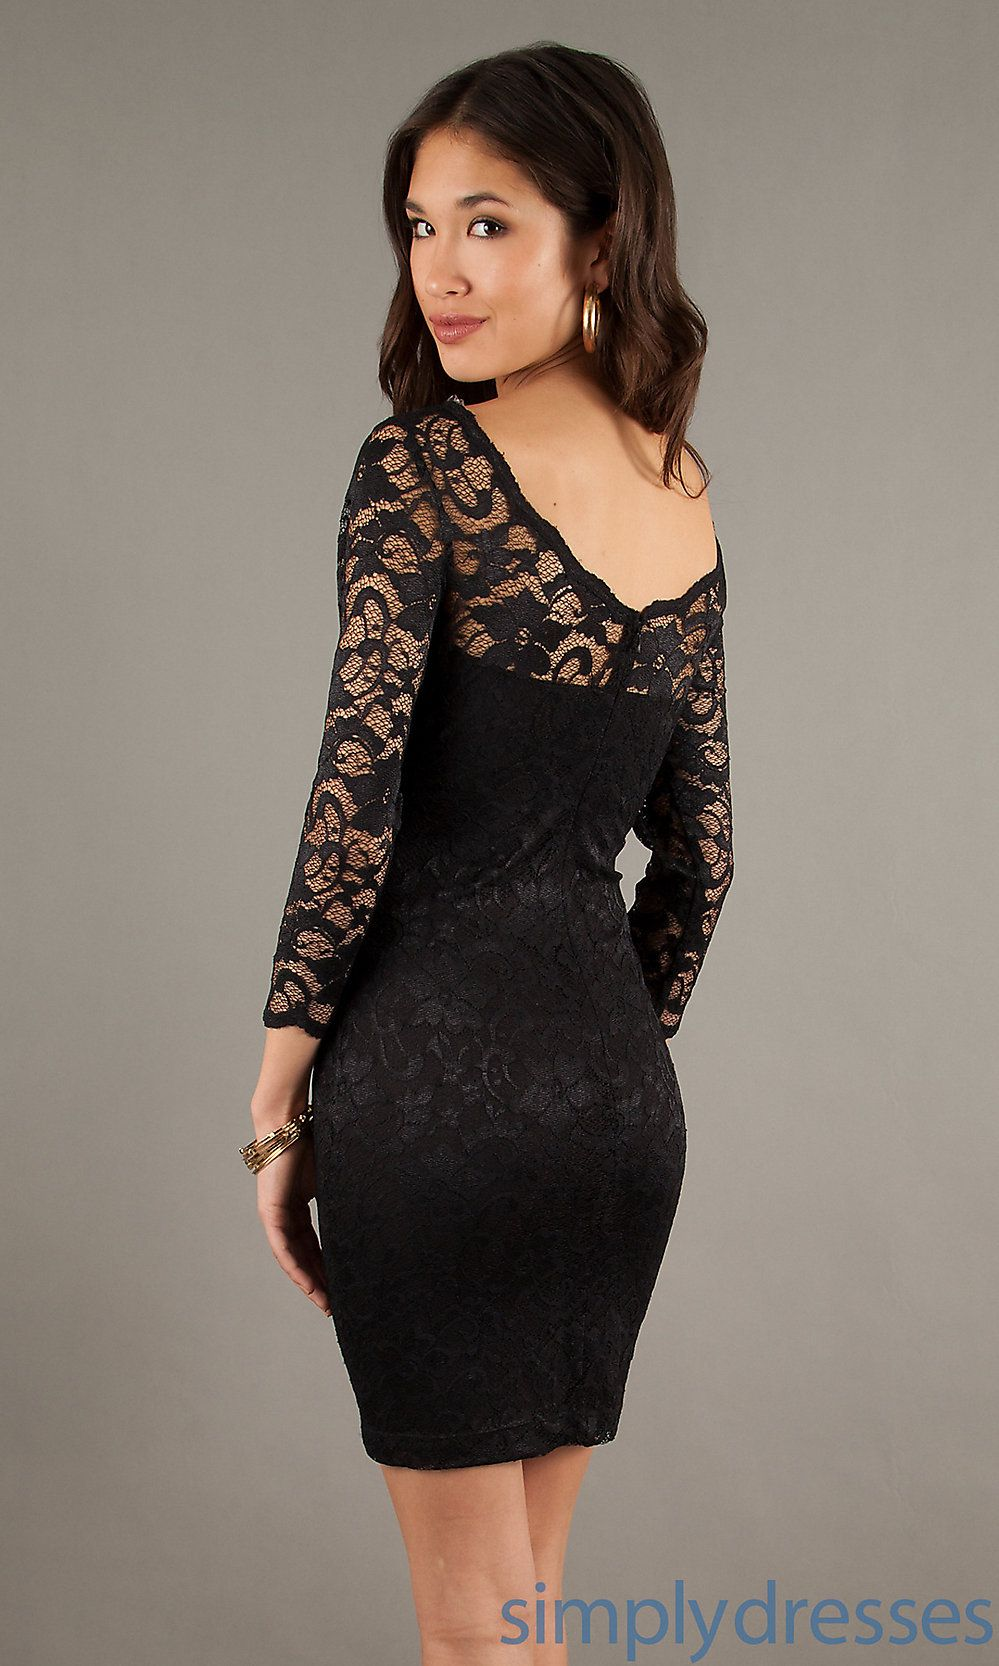 Dress, Long Sleeve Little Black Lace Dress | Stylin' attire ...